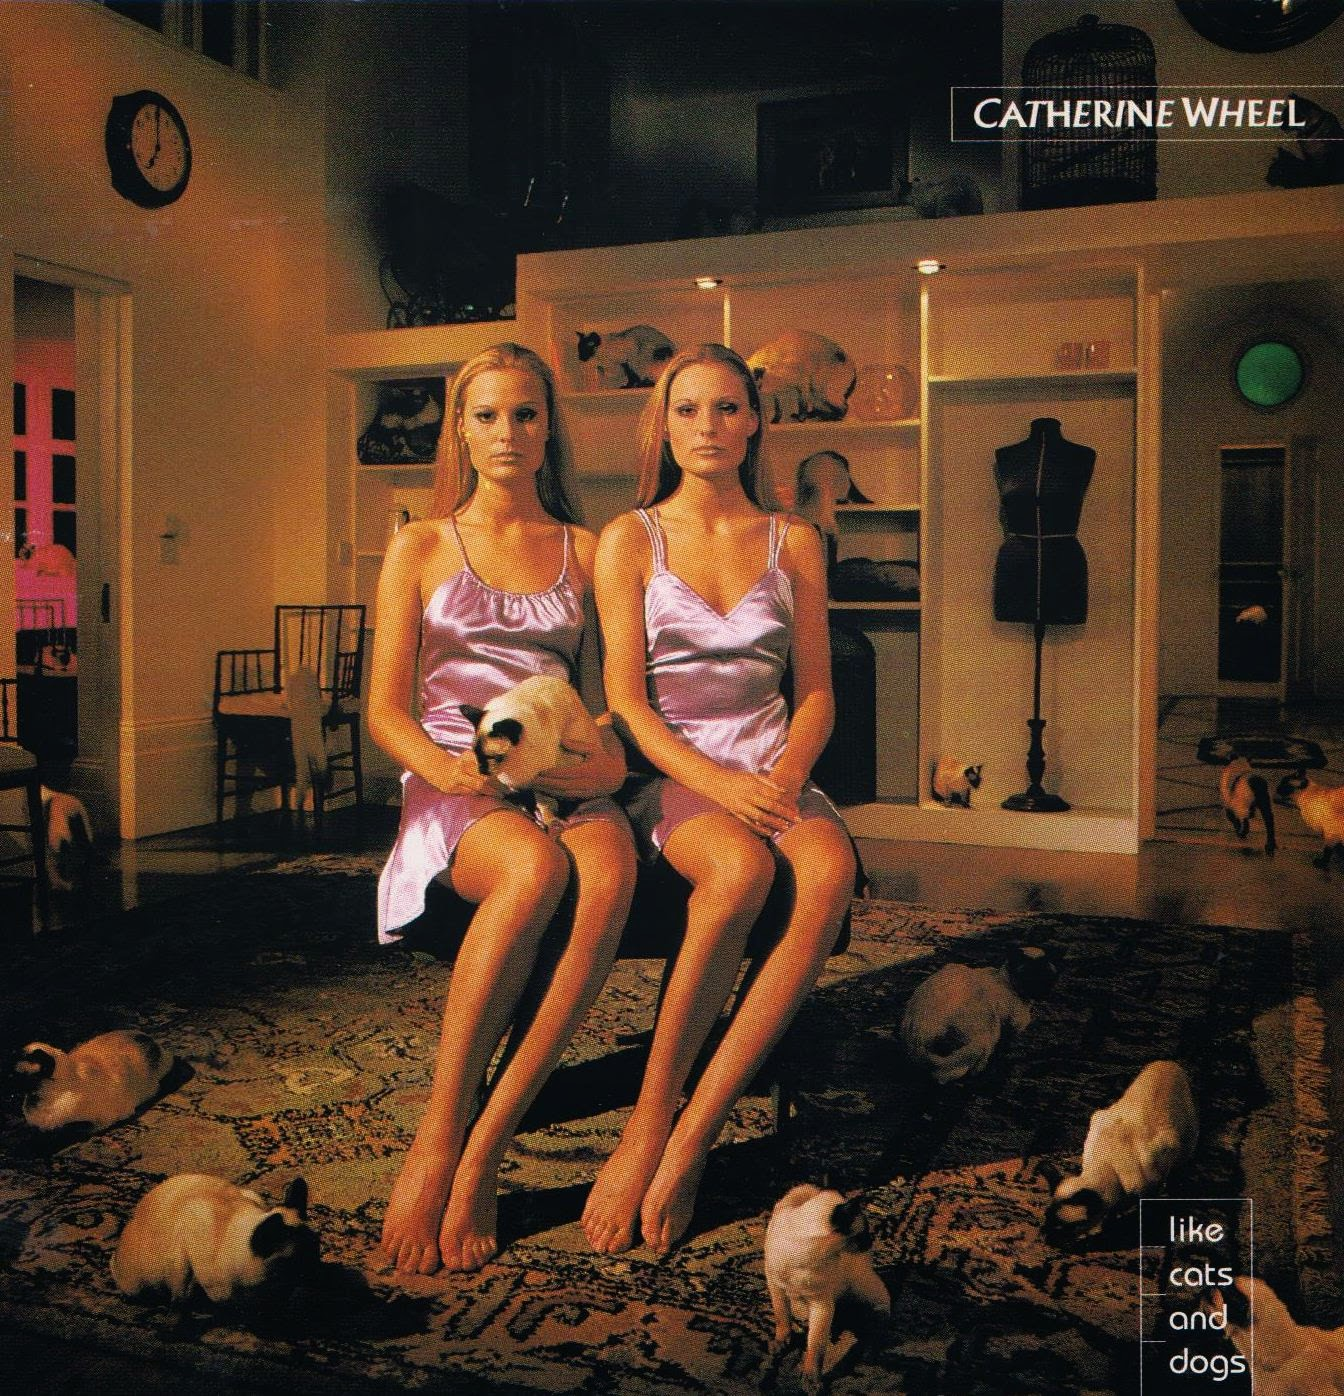 Catherine Wheel Like Cats And Dogs